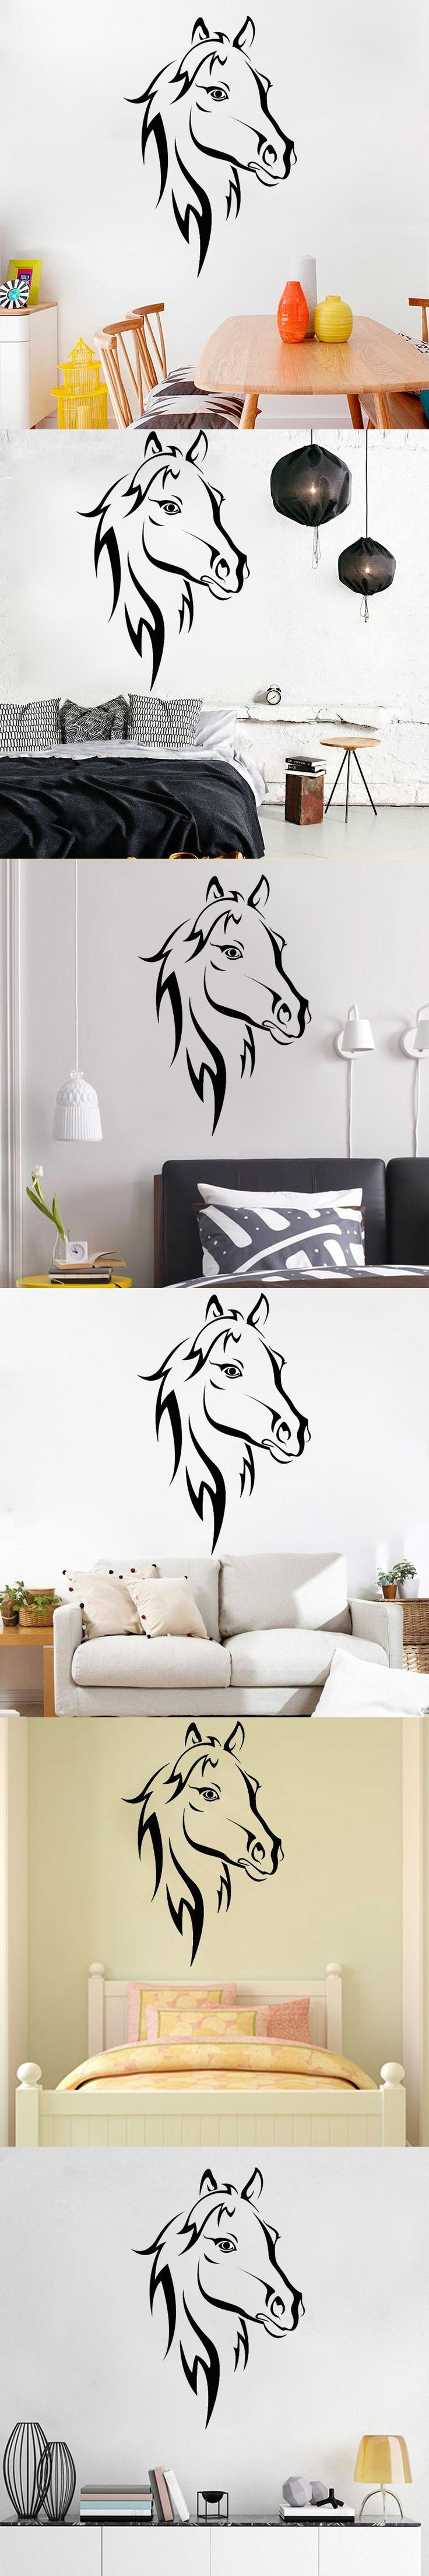 Best 25 animal wall decals ideas on pinterest wall stickers best 25 animal wall decals ideas on pinterest wall stickers jungle animals wall stickers with trees and wall stickers animals amipublicfo Image collections